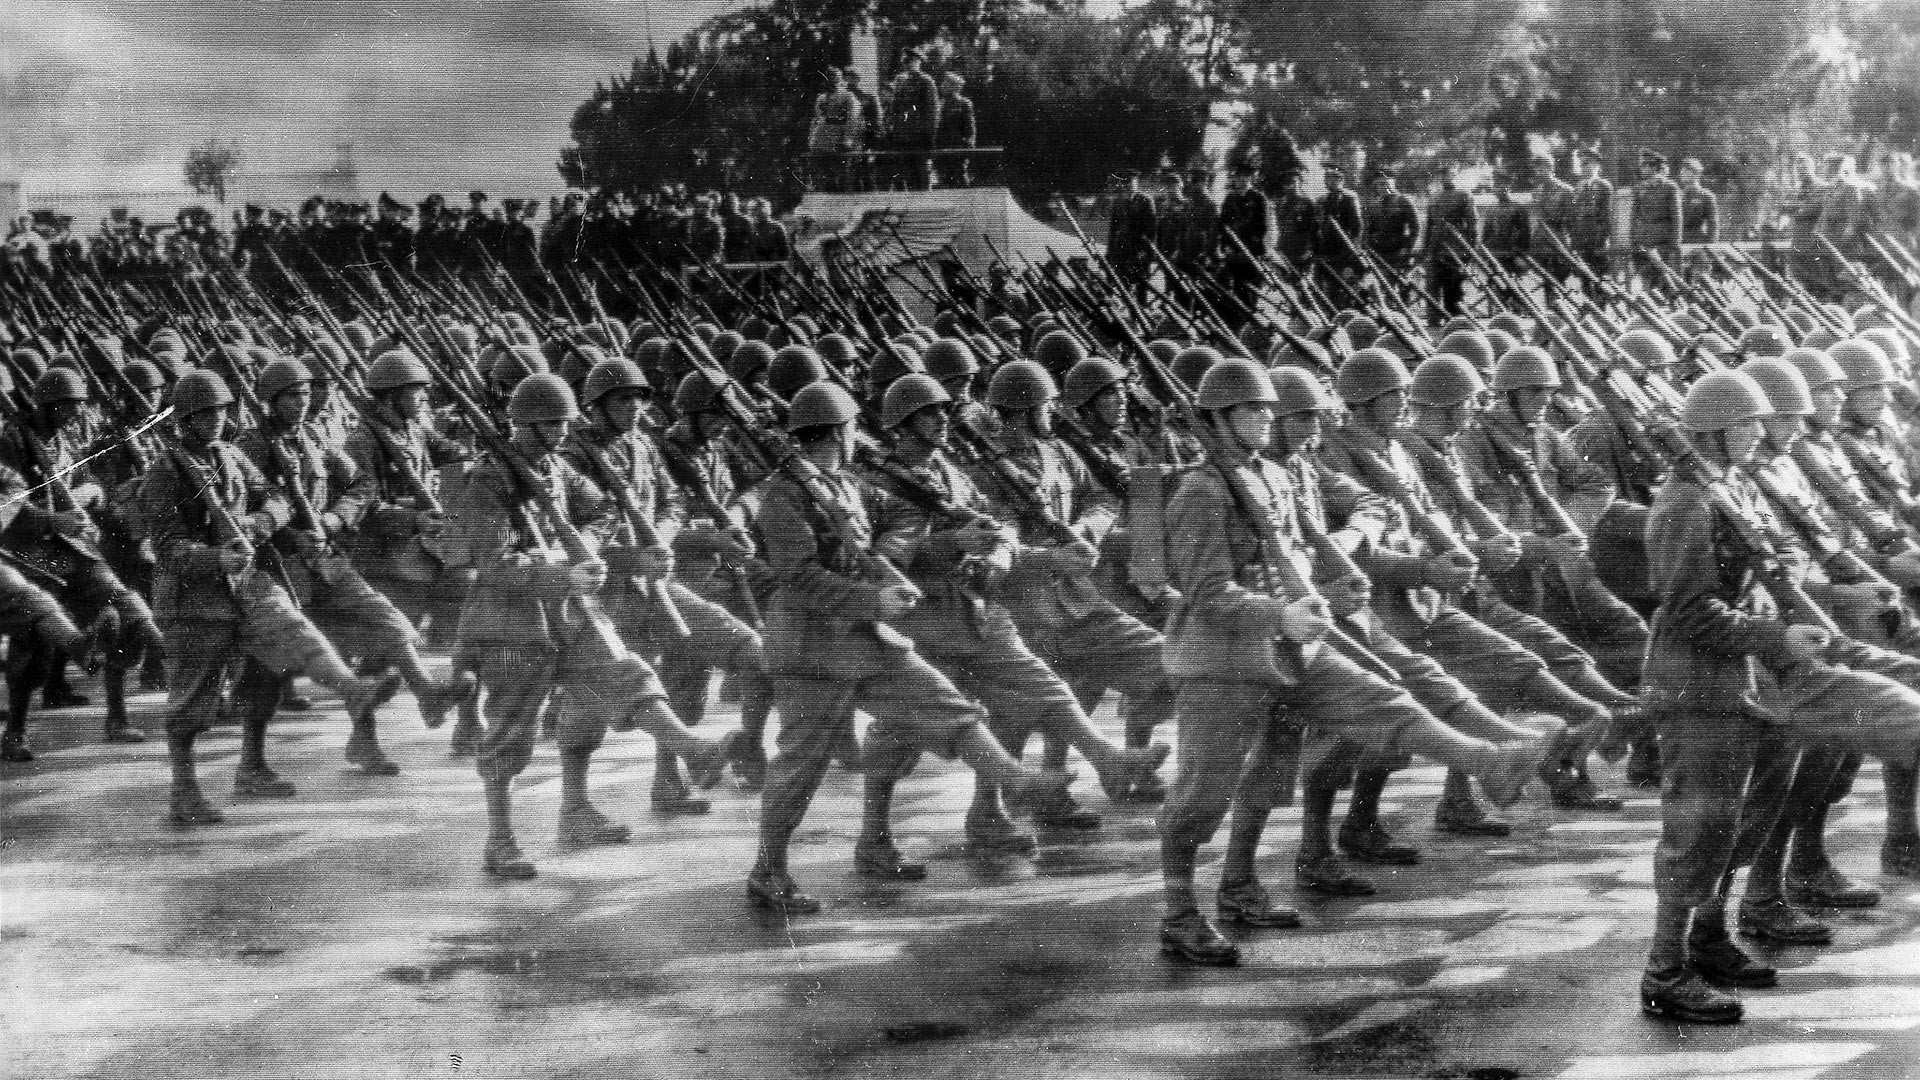 Parade of Italian troops in Rome.